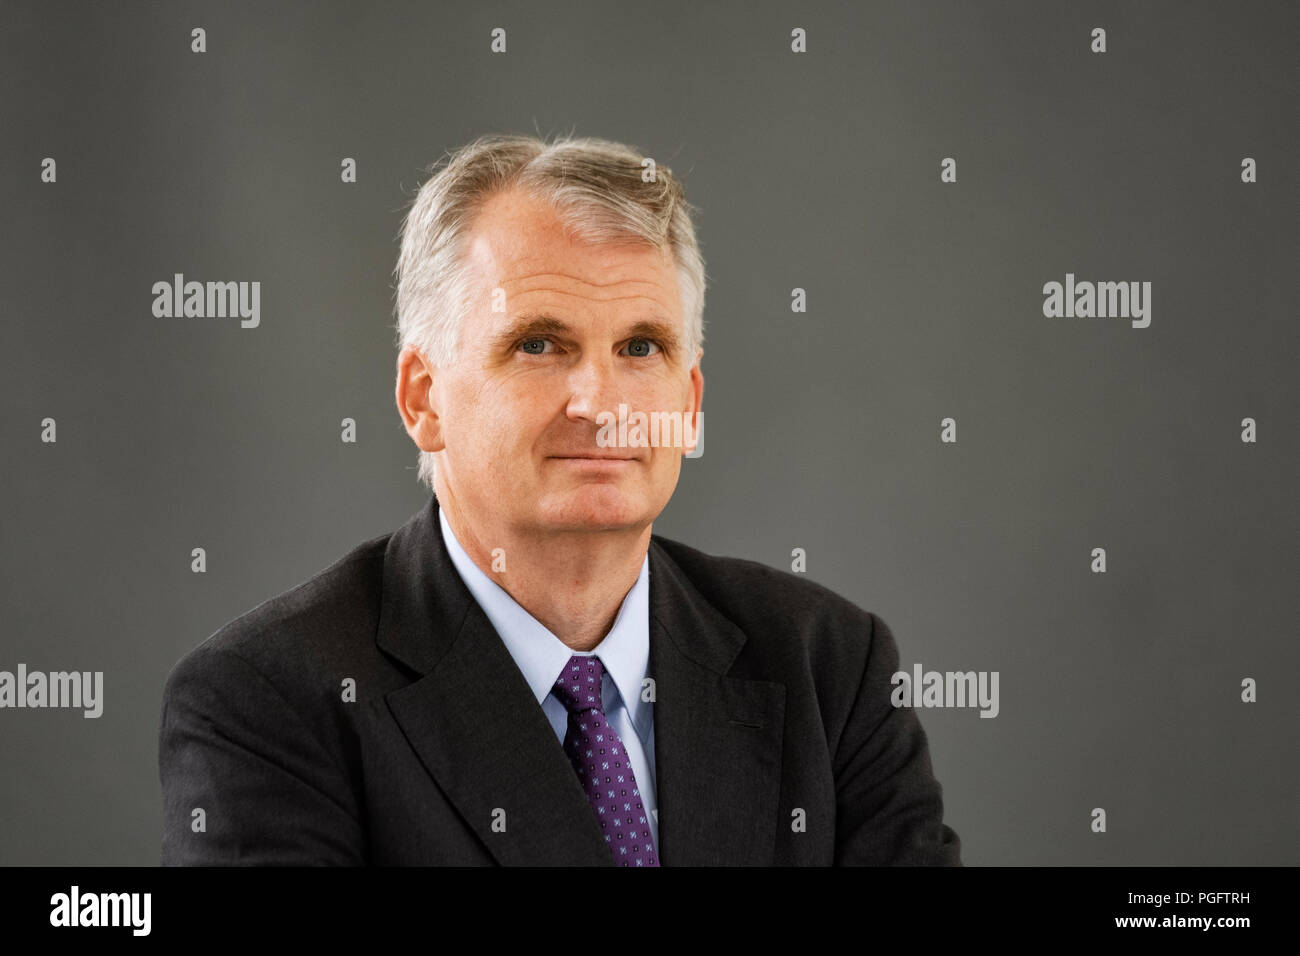 Edinburgh, Scotland, UK. 26 August, 2018. Pictured; Timothy Snyder, in his book ÒThe Road to UnfreedomÓ , he shows how PutinÕs authoritarianism is spreading, aided by Russian warfare in Ukraine and cyber attacks in Europe and America. Credit: Iain Masterton/Alamy Live News - Stock Image